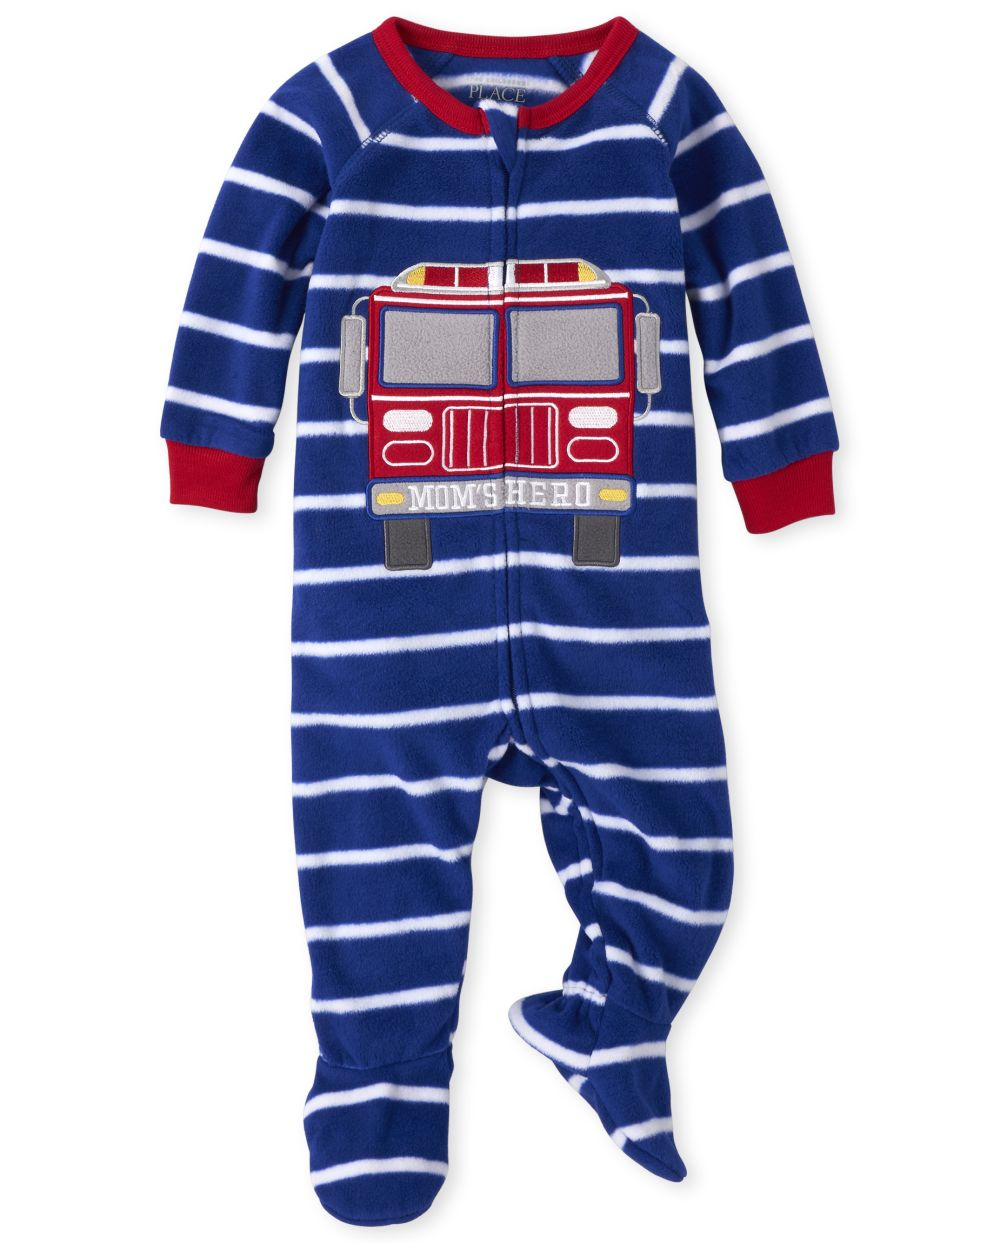 Baby And Toddler Boys Fire Truck Striped Fleece One Piece Pajamas - Blue